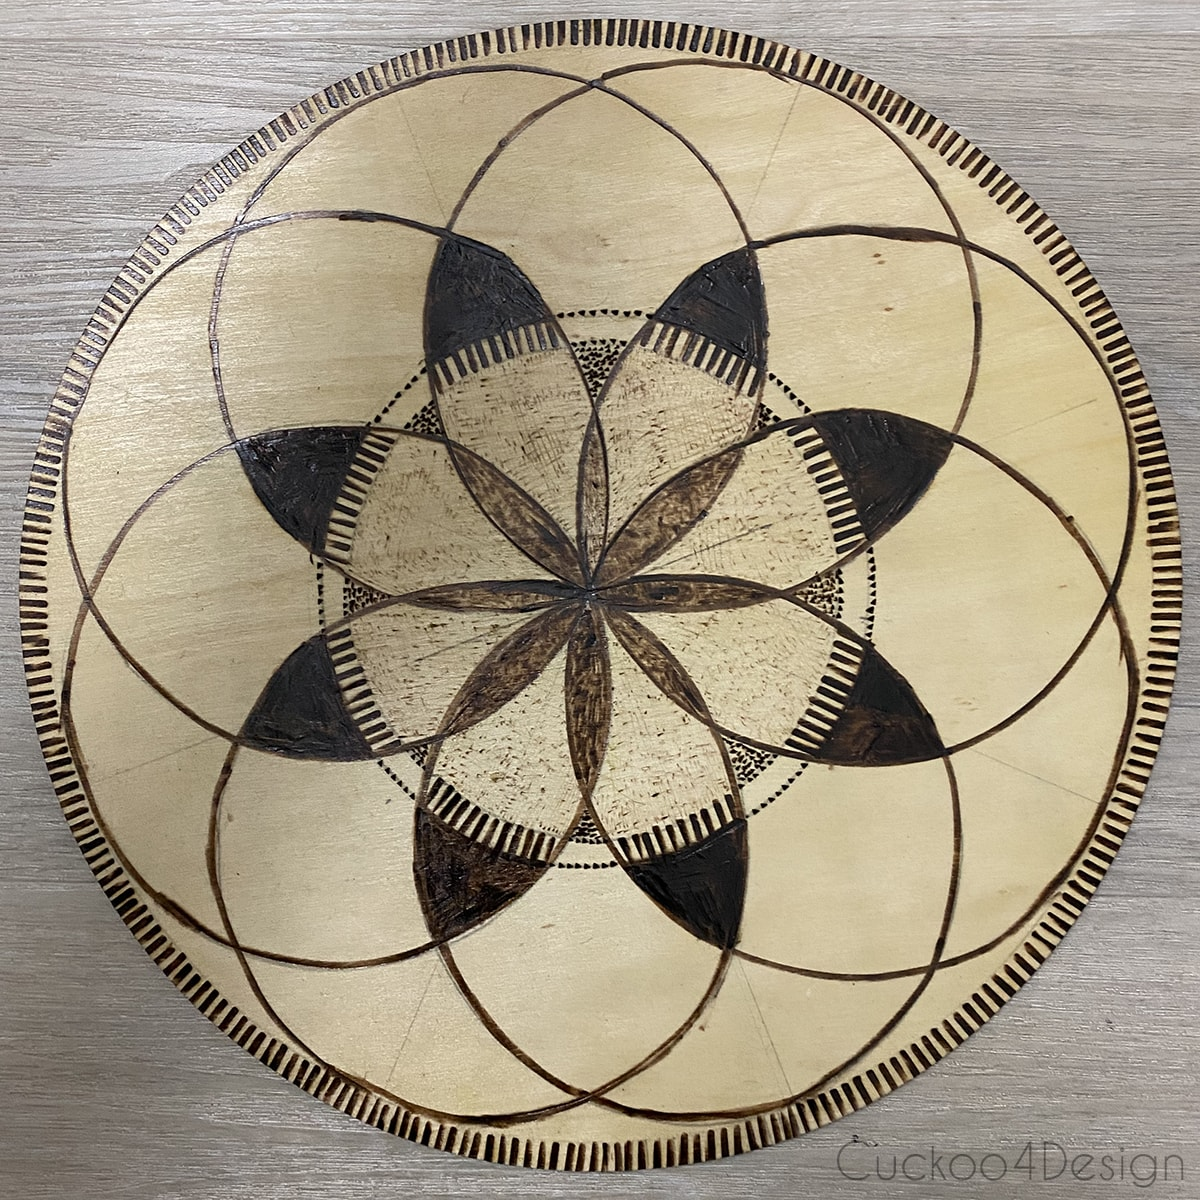 Wood burned circular geometric wall art piece without color